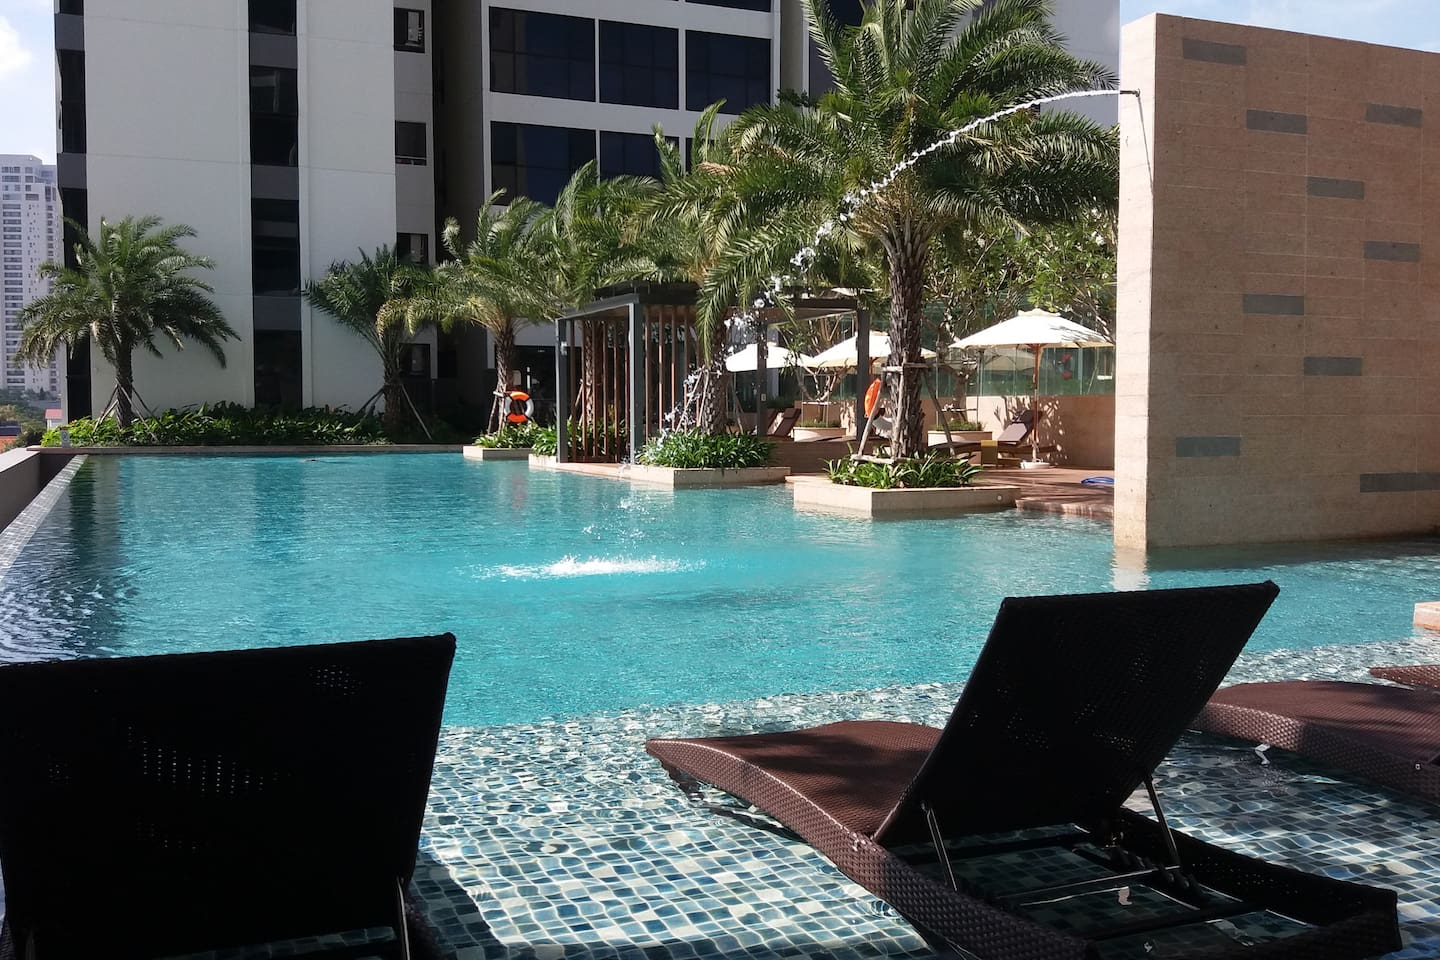 One of two beautiful infiniti pools at The Ascent!!!